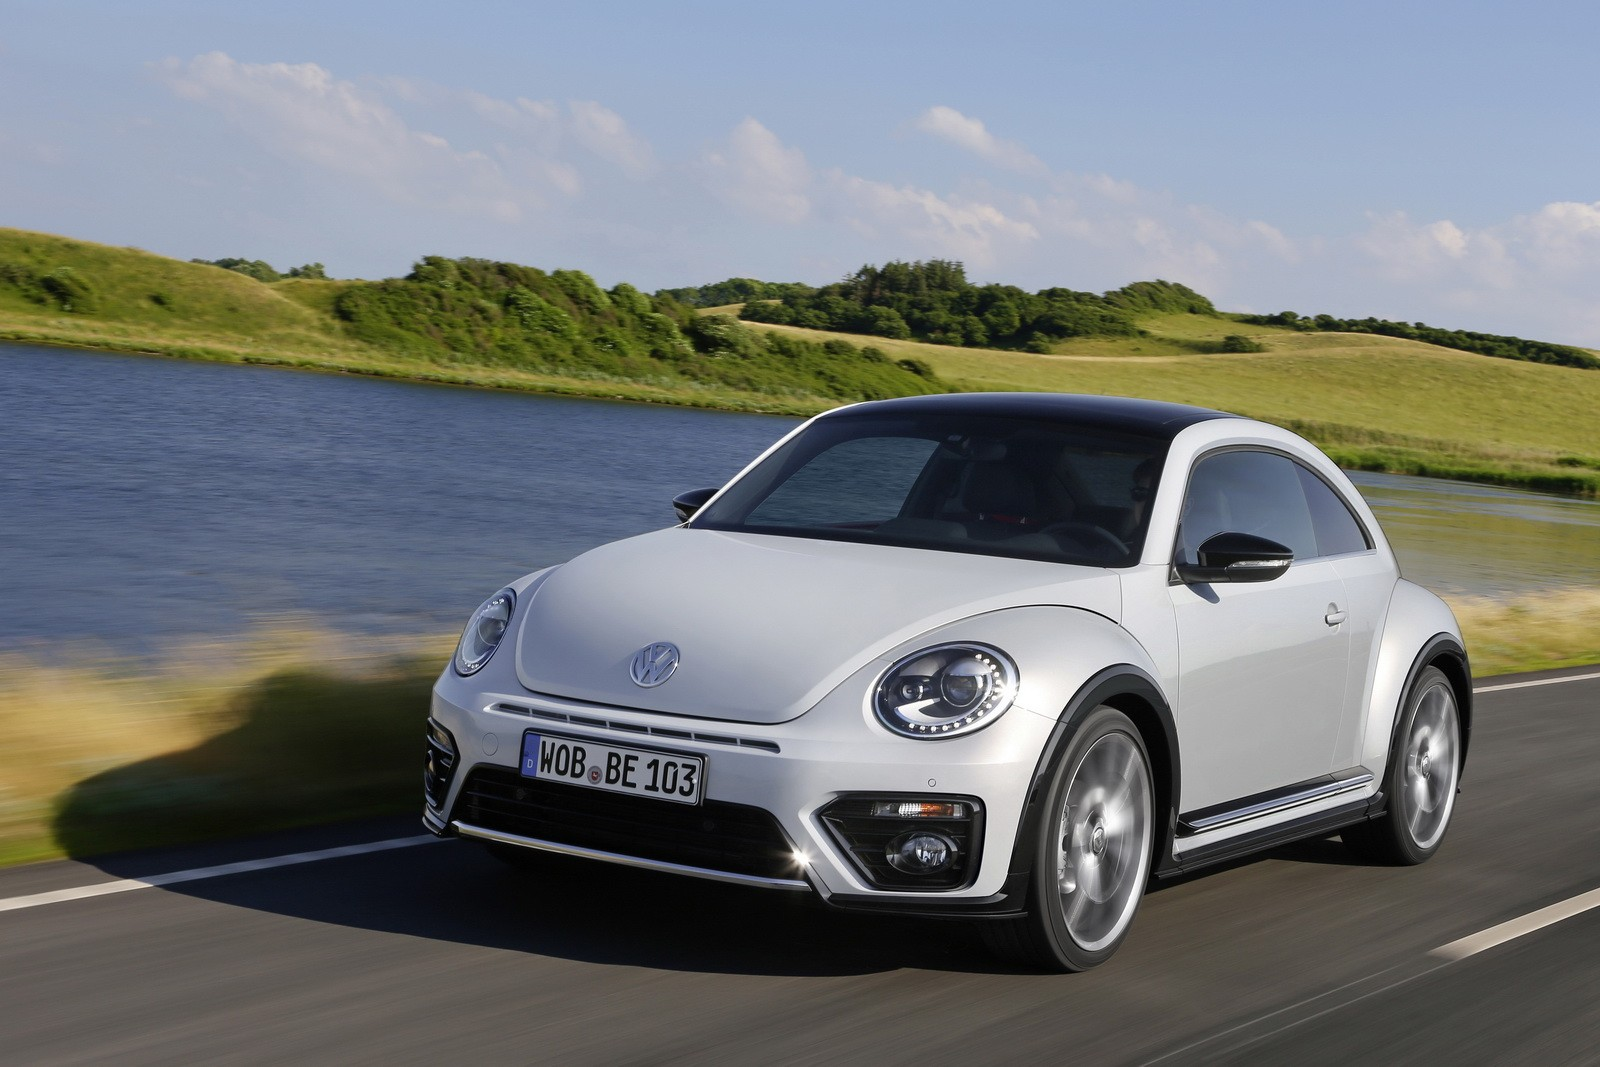 Volkswagen's Next-Generation Beetle Might Come After 2020